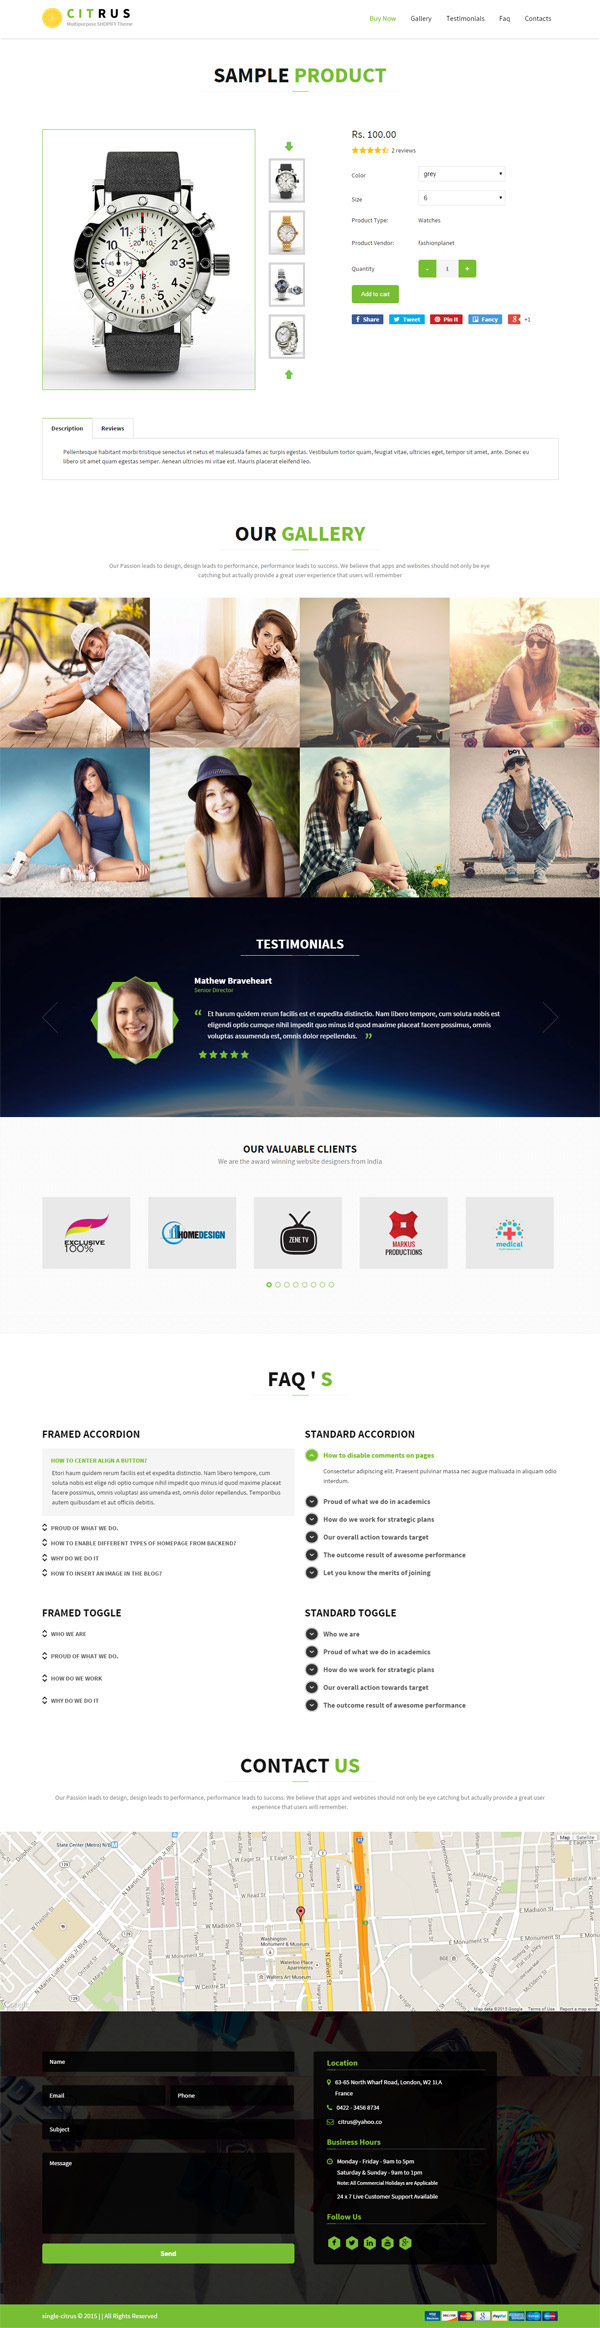 Citrus one page parallax shopify theme on pantone canvas for Page 3 salon coimbatore